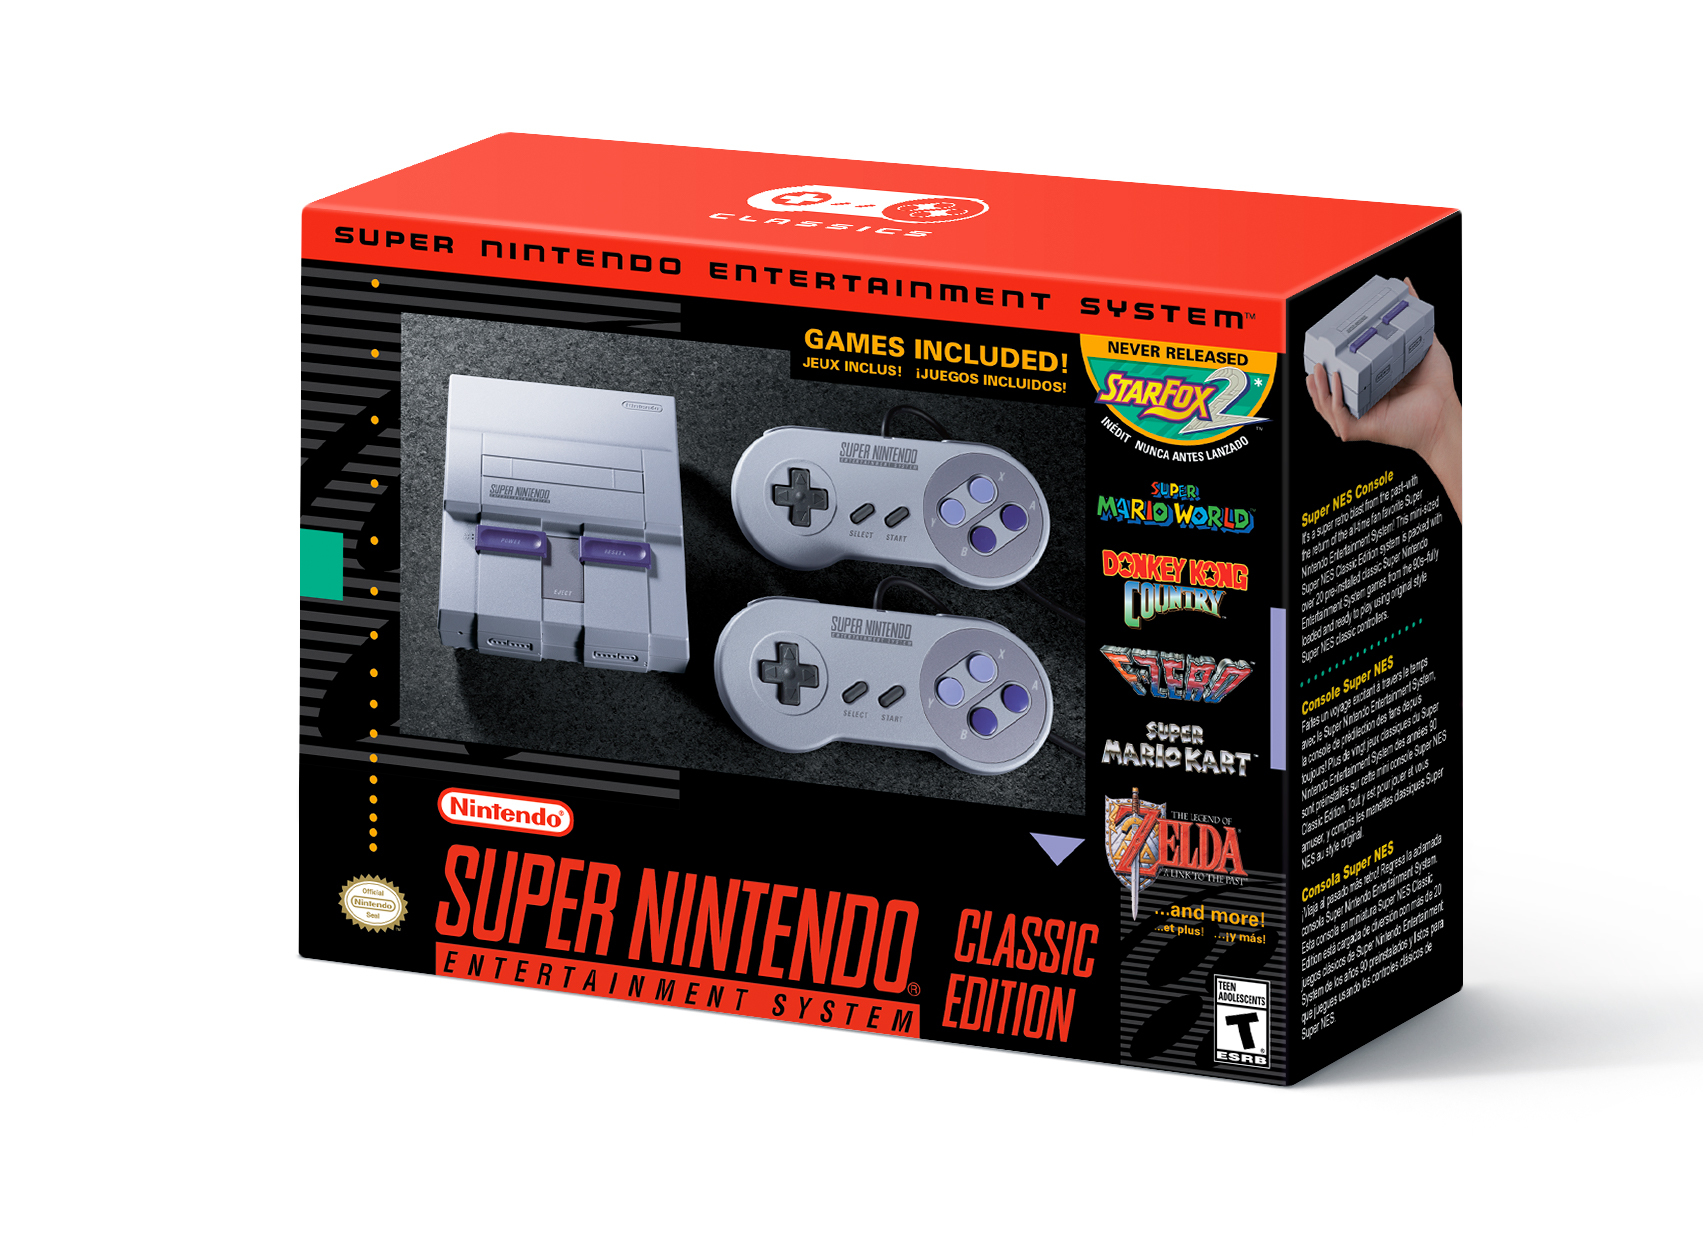 Stock photo of a Super Nintendo Classic Edition new in box.